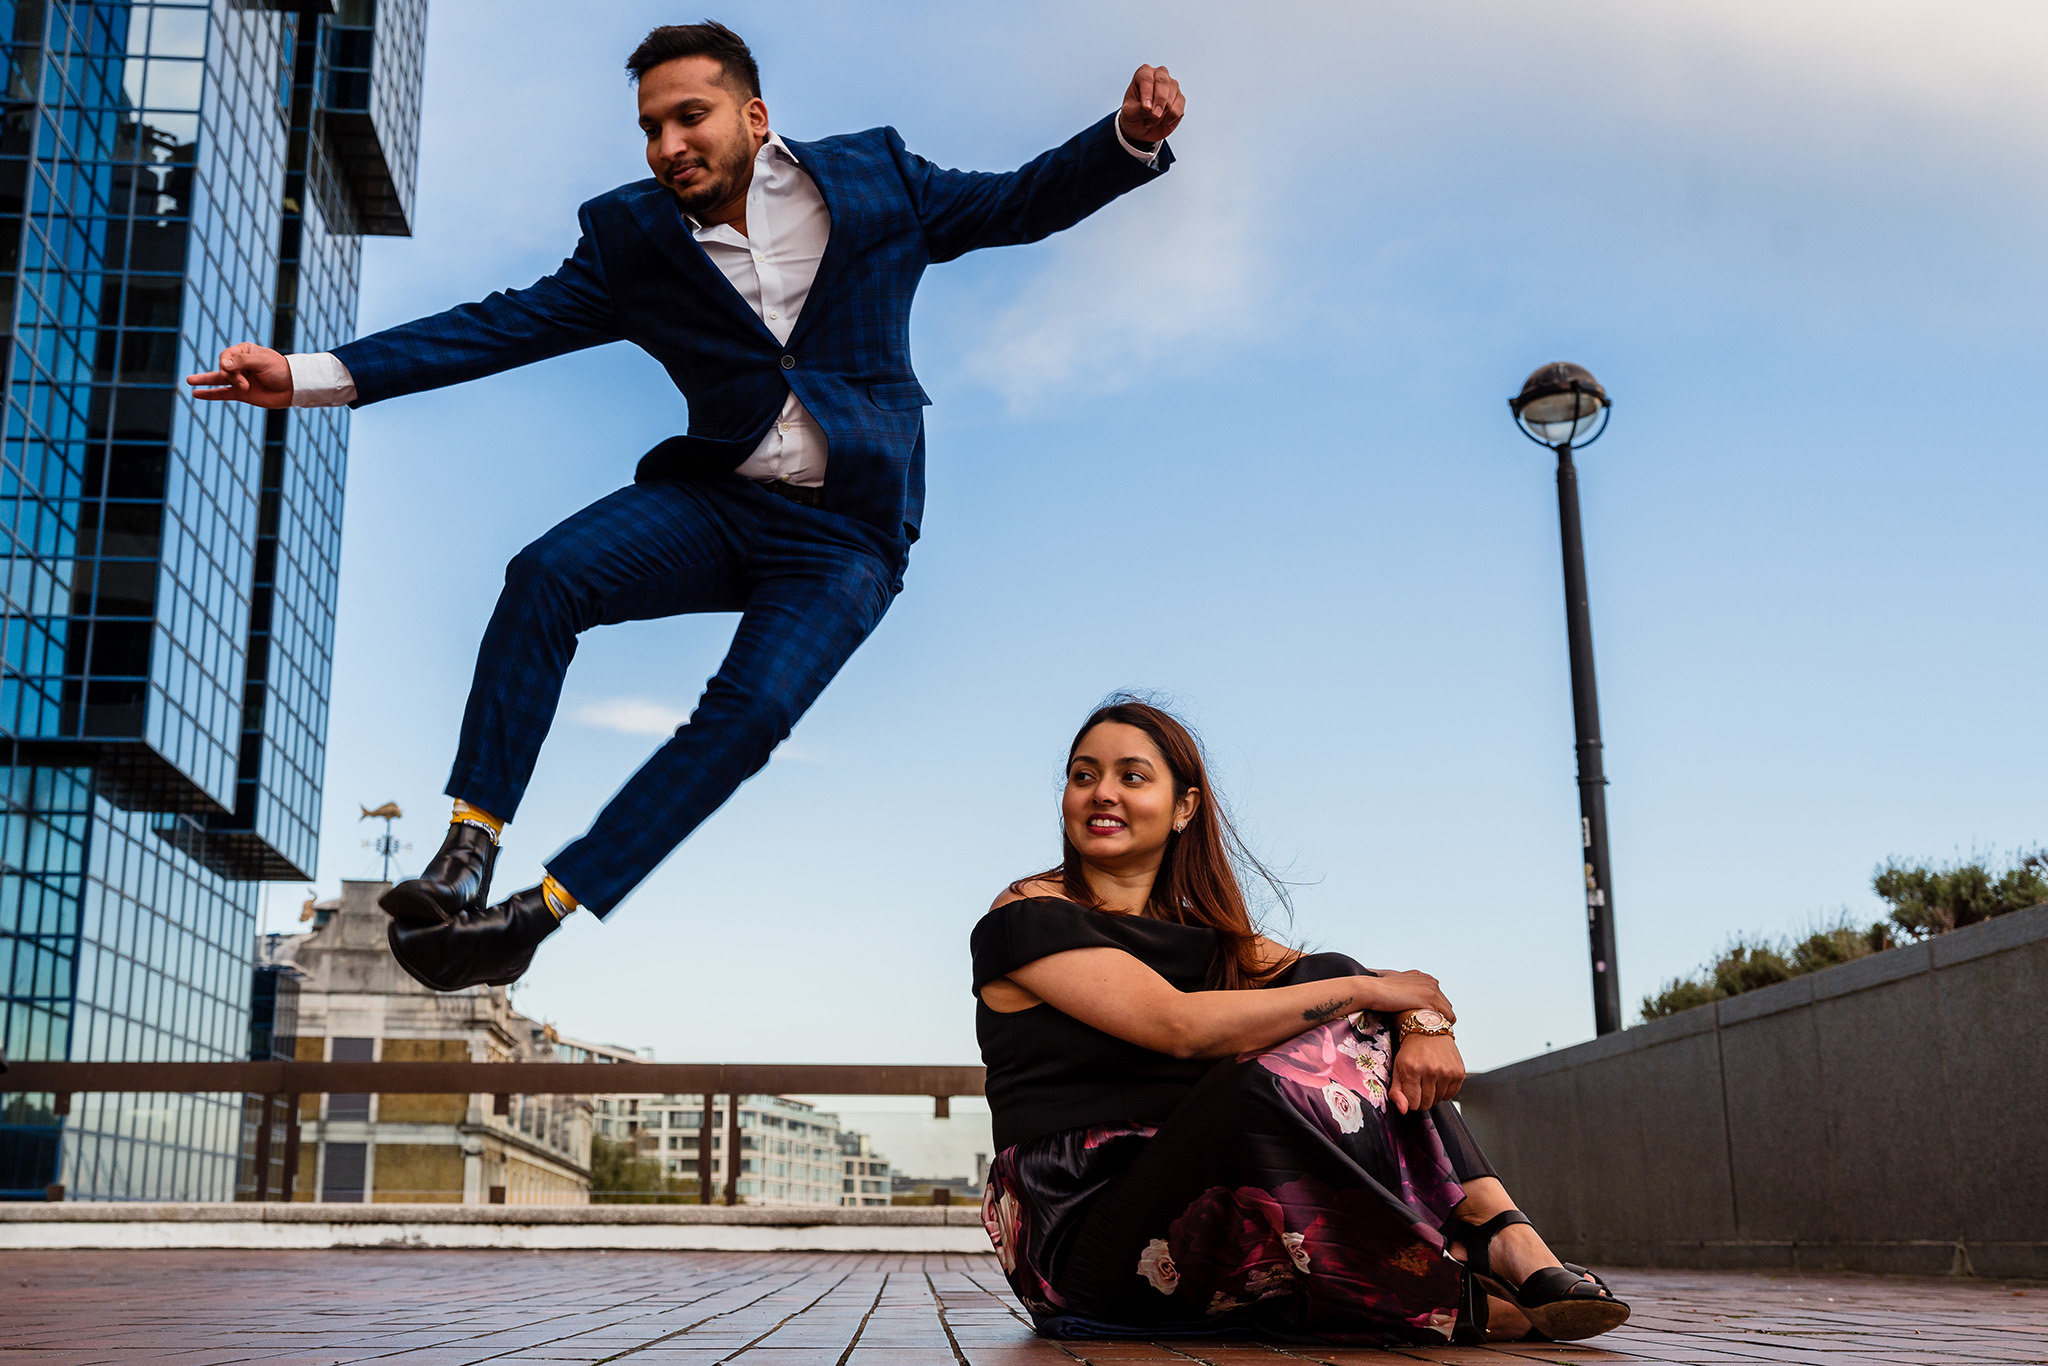 london fun prewedding shoot